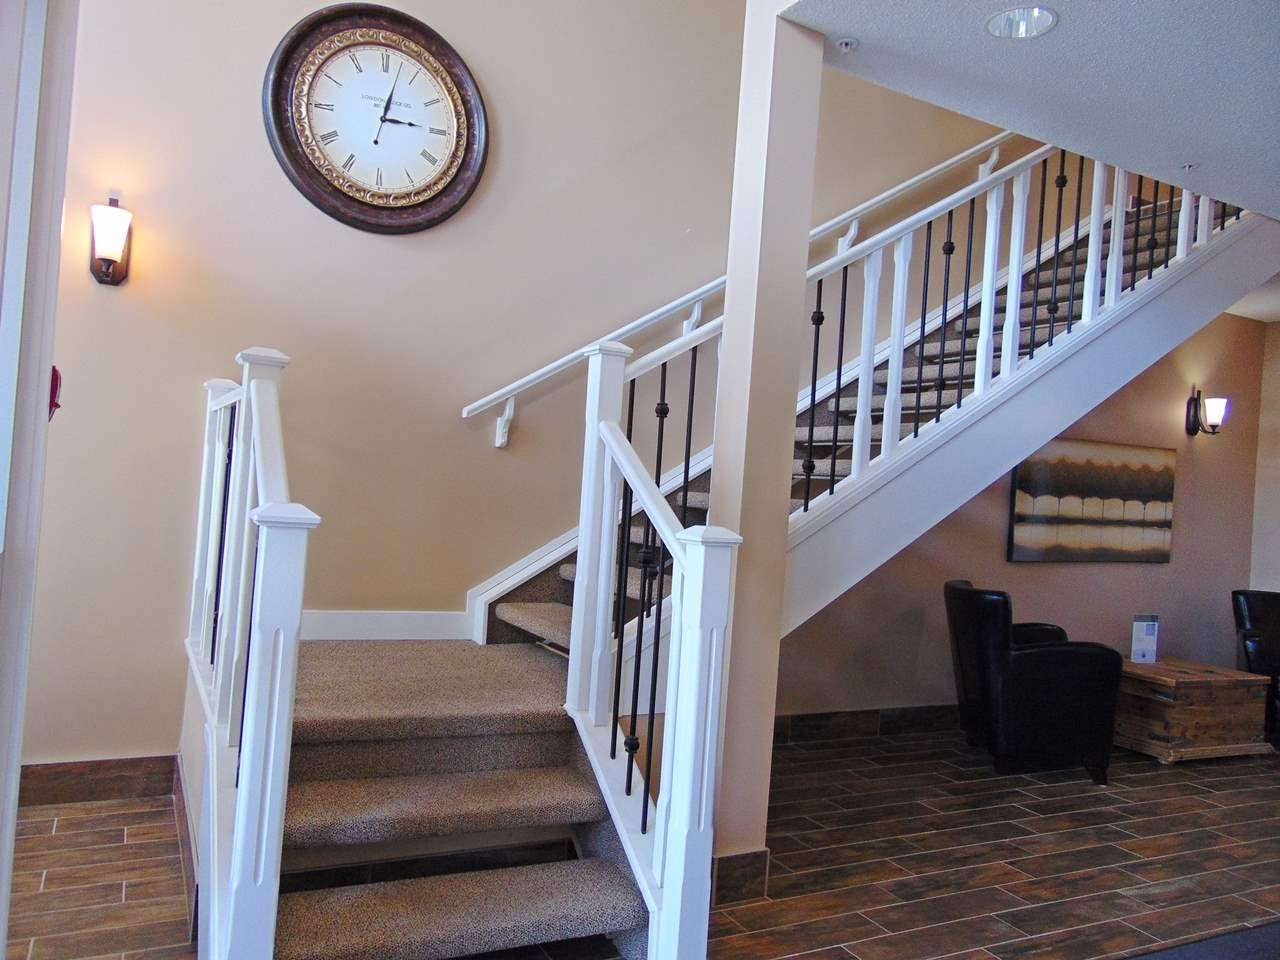 Photo 2: 203 4922 52 Street: Gibbons Condo for sale : MLS® # E4071334